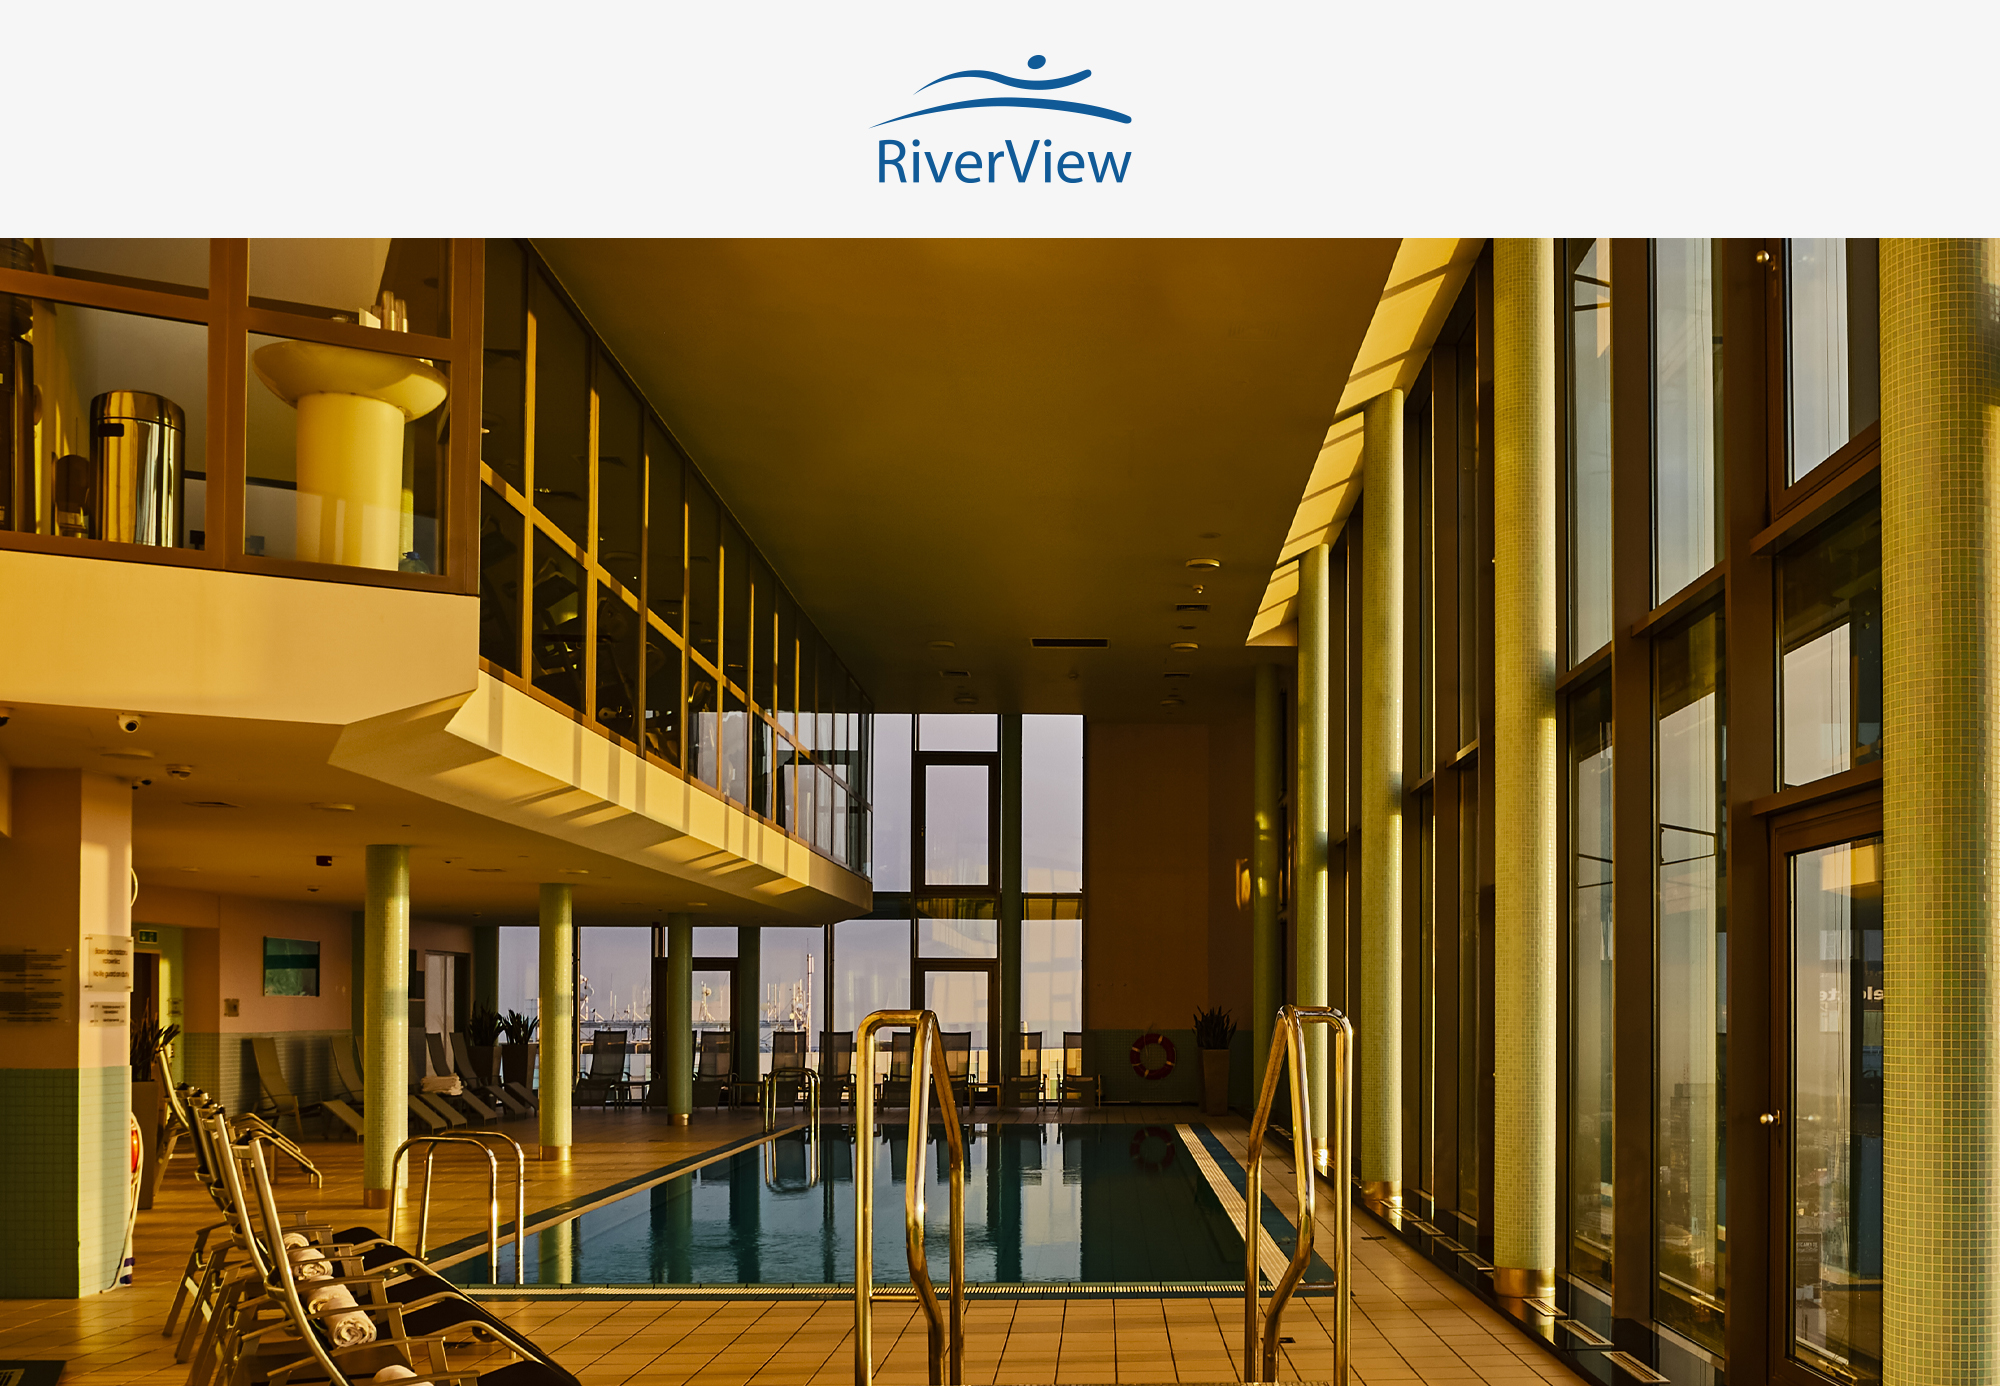 GoldSky – 30-days membership at RiverView Wellness Centre